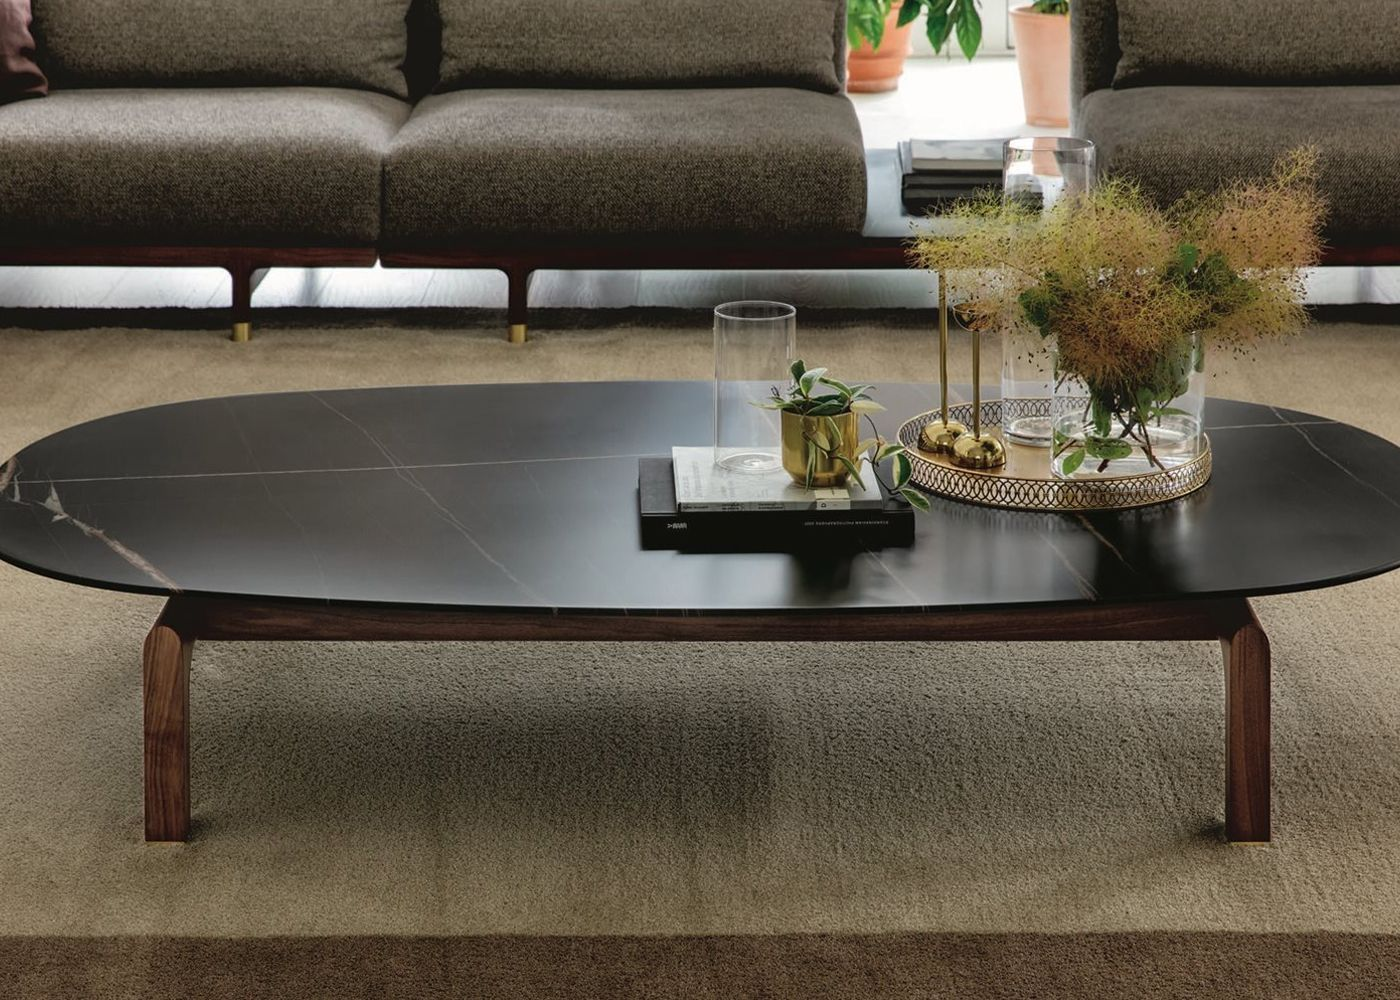 Glass Wood Coffee Table Wooden Street Offers An Amazing Wooden Coffee Table Design Glass Wood Coffee Table Coffee Tables For Sale Coffee Table Makeover [ 720 x 1280 Pixel ]